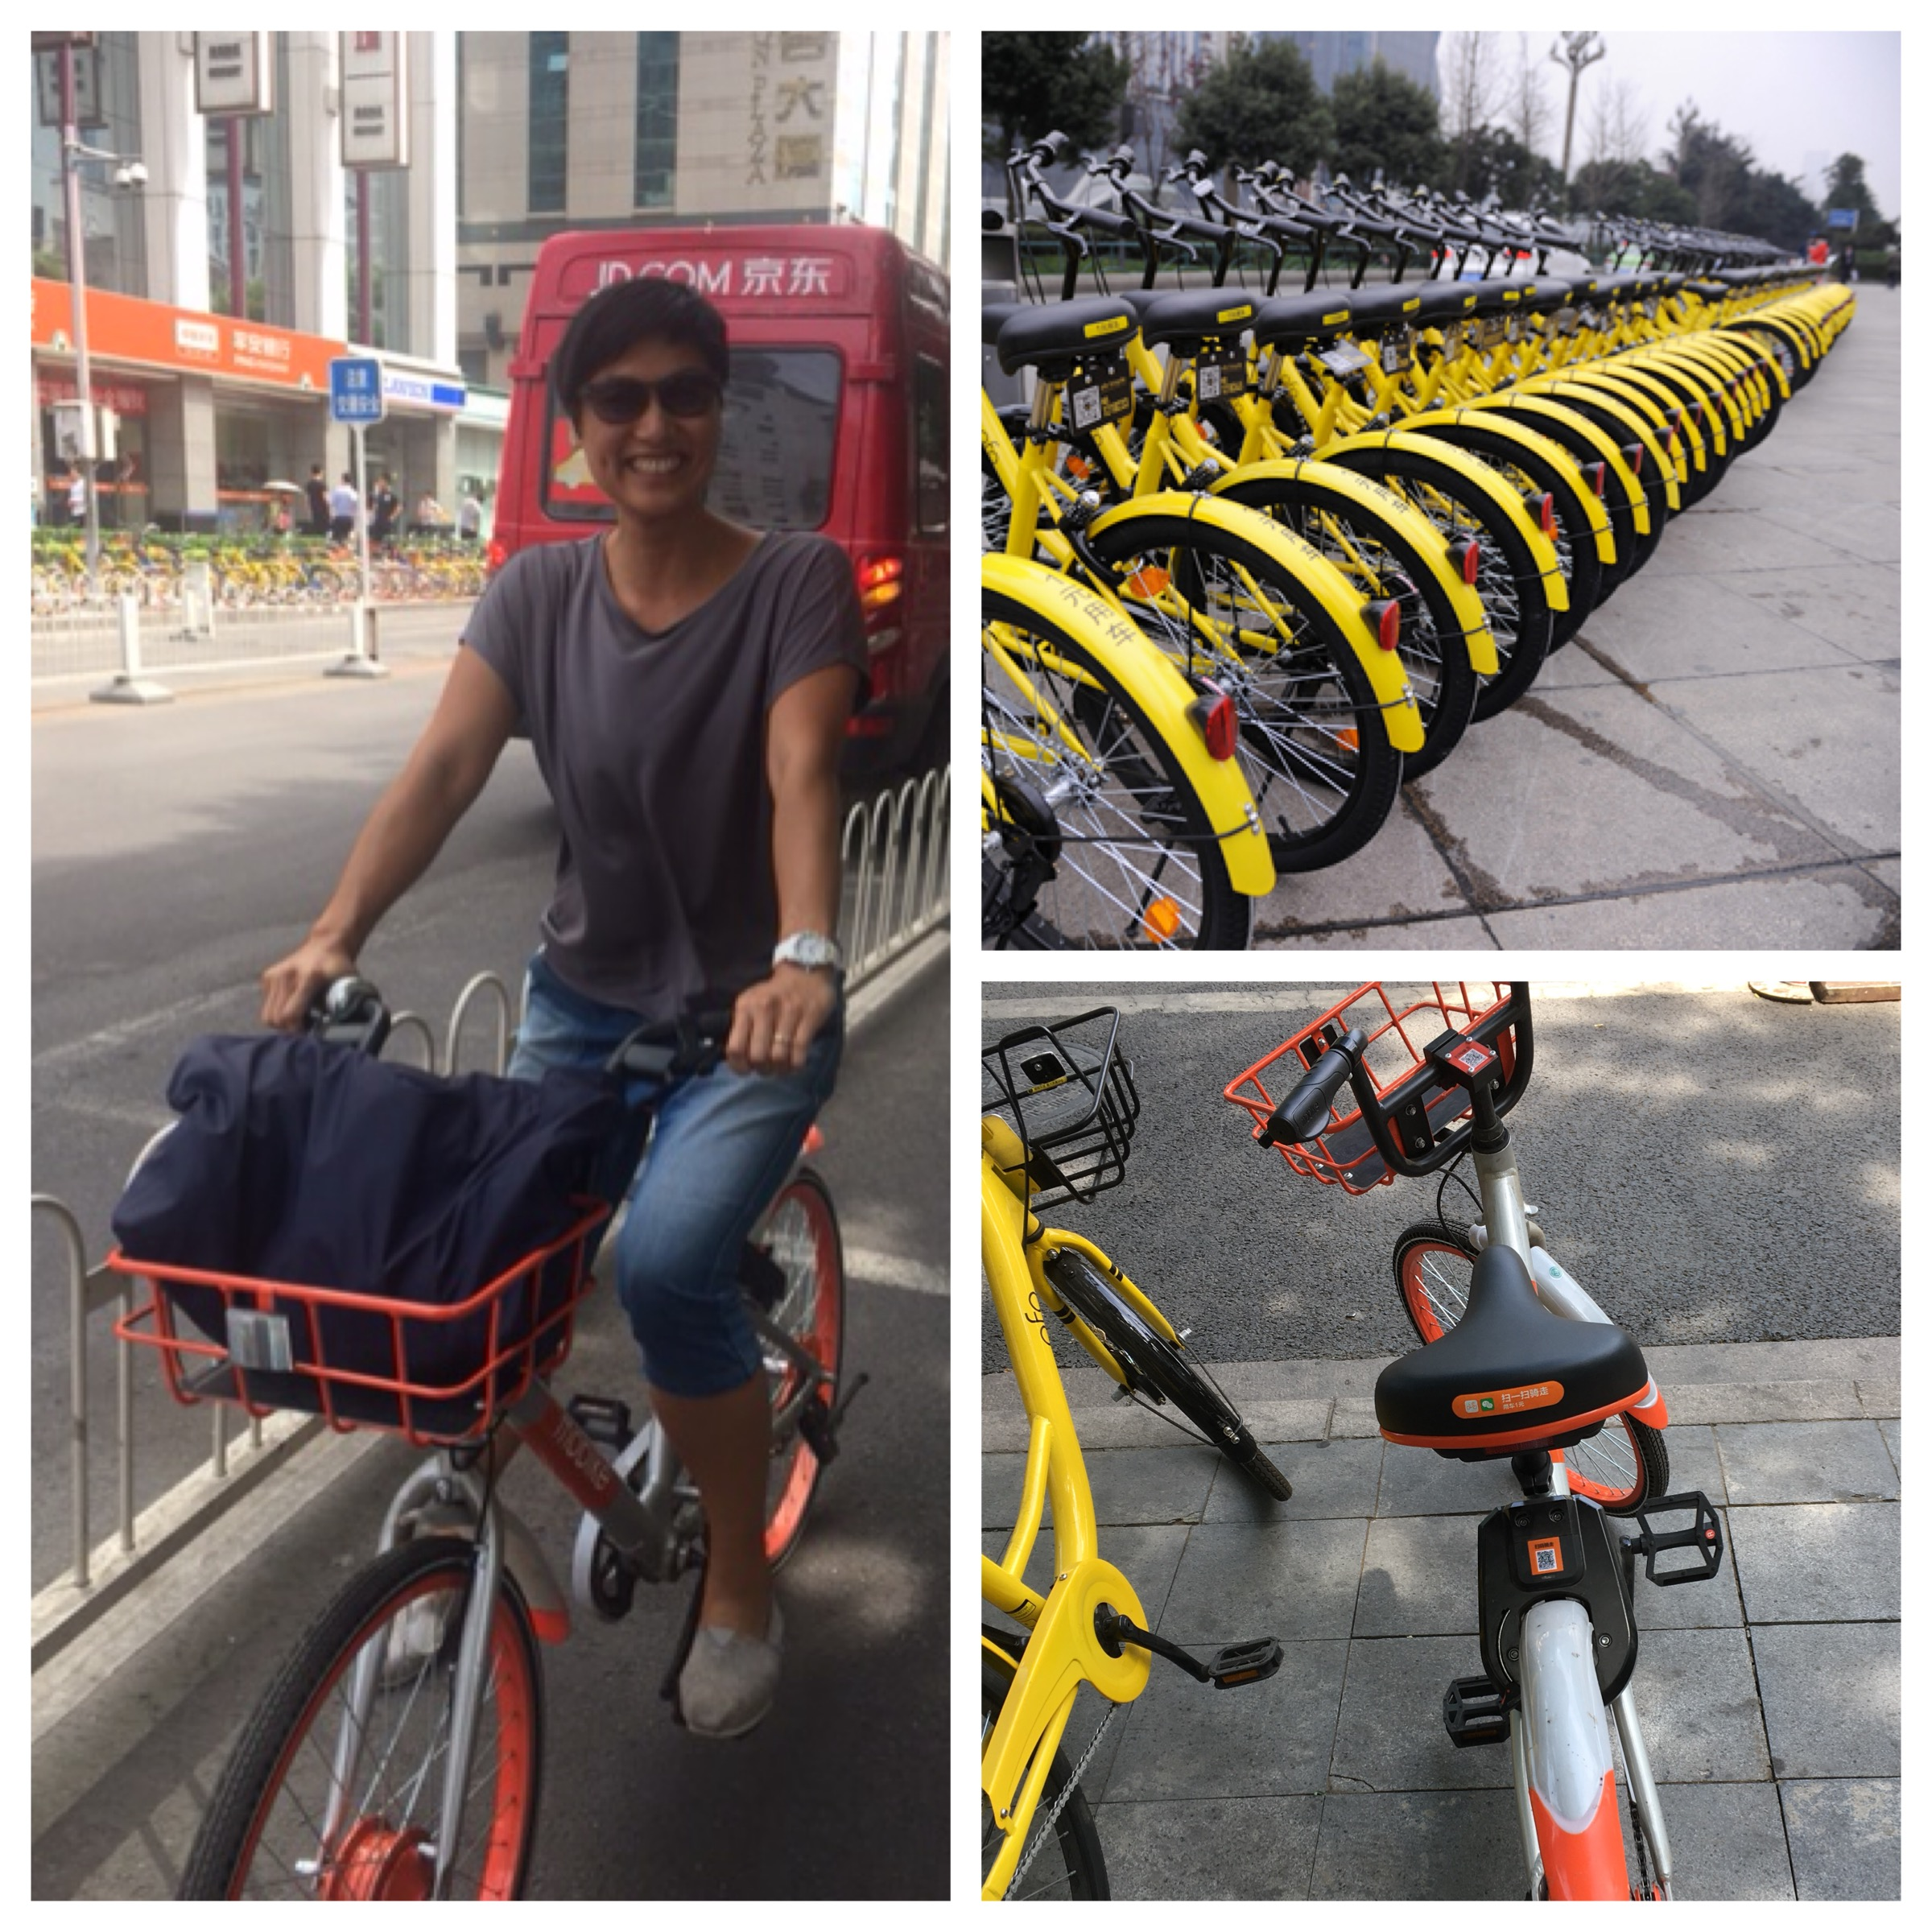 I was in Beijing and rode back to my hotel after meeting a friend. It took less time than the taxi ride there.